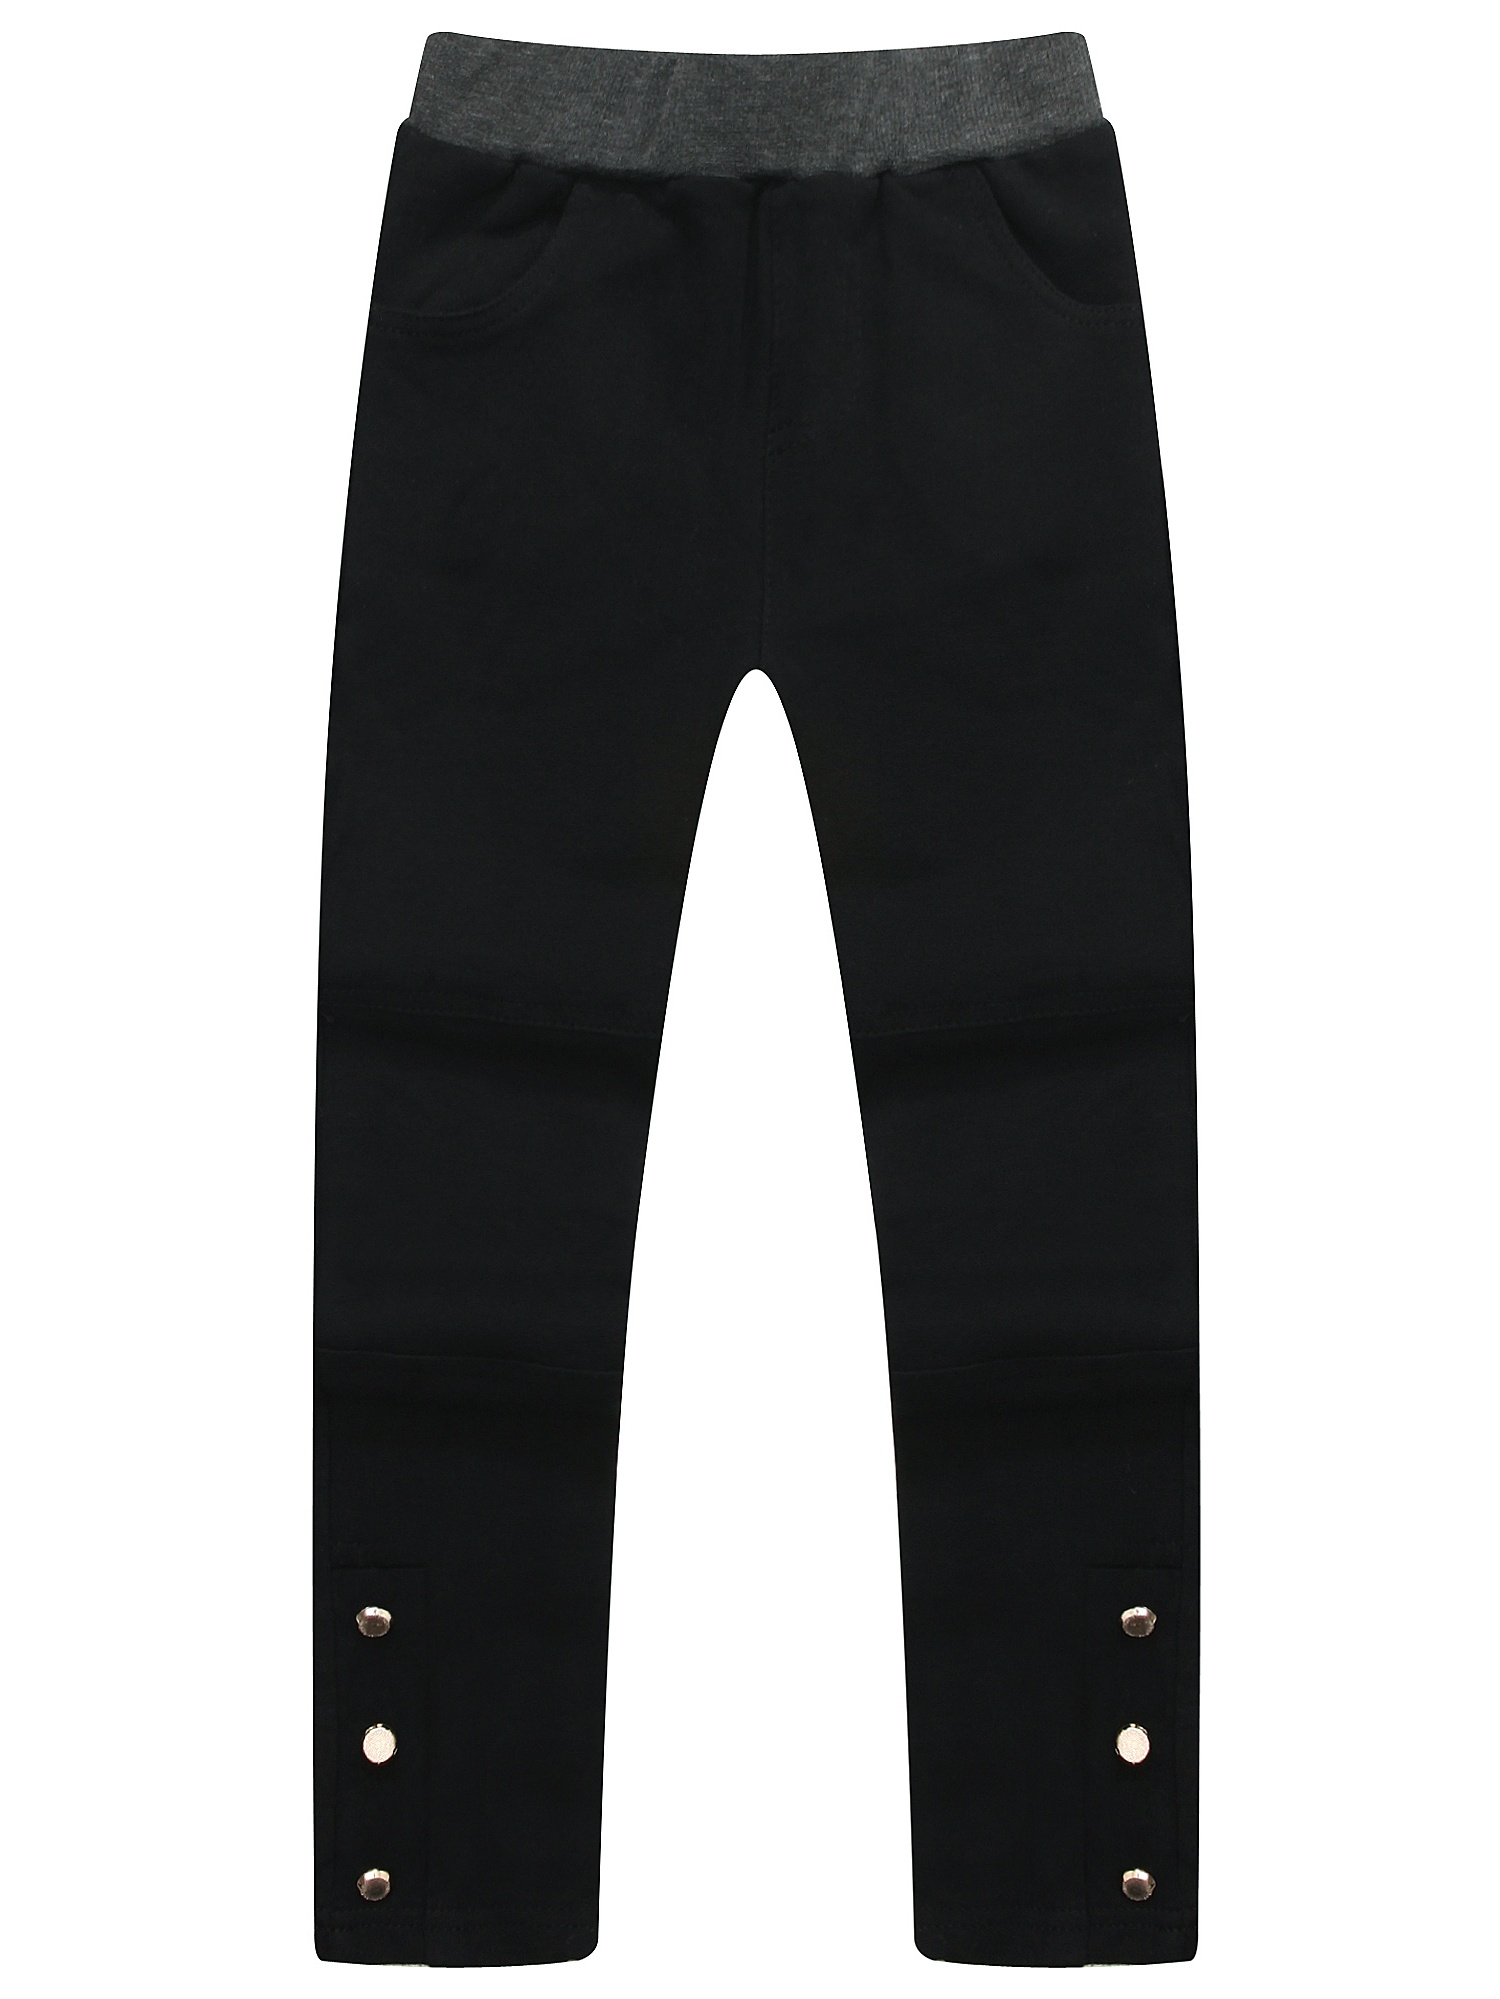 Richie House Girls' Skinny Pants with Buttons at Hem RH1547